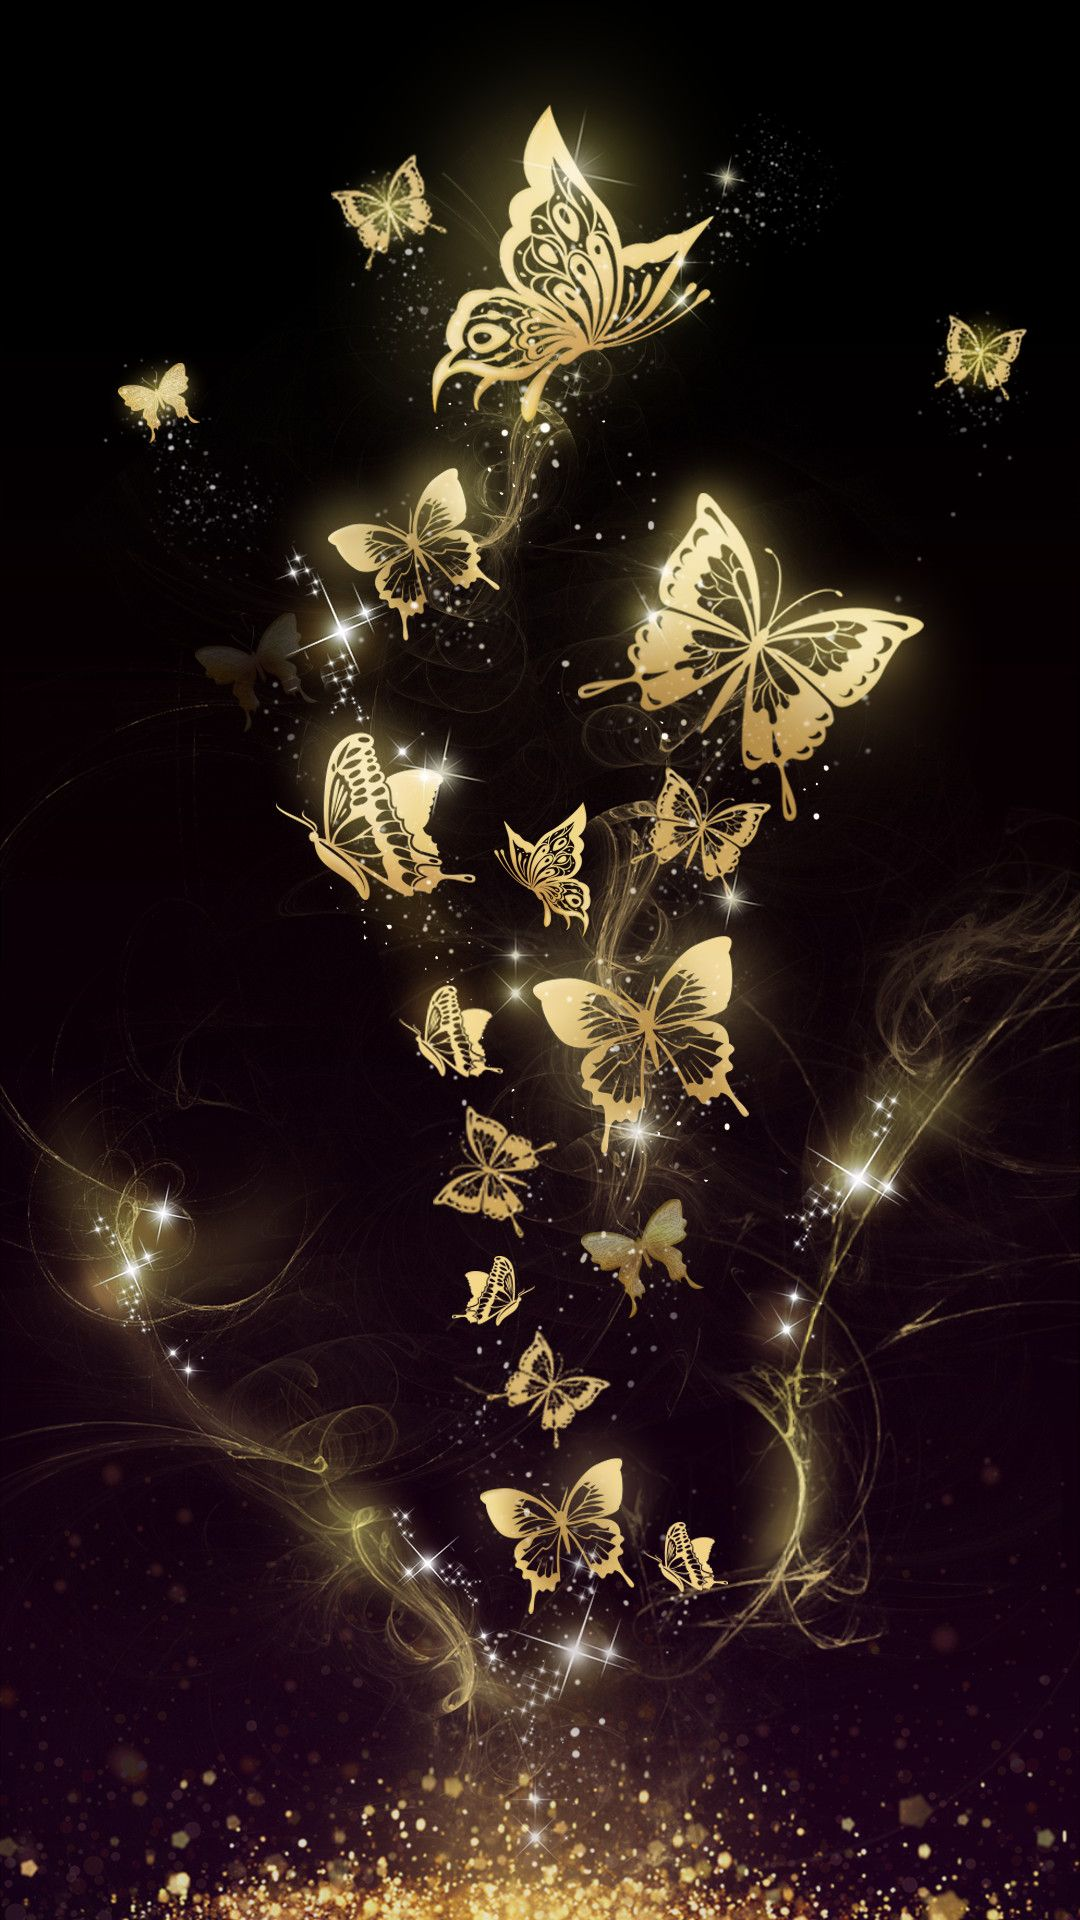 Black Dynamic Wallpaper Iphone In 2020 Butterfly Wallpaper Beautiful Nature Wallpaper Butterfly Background